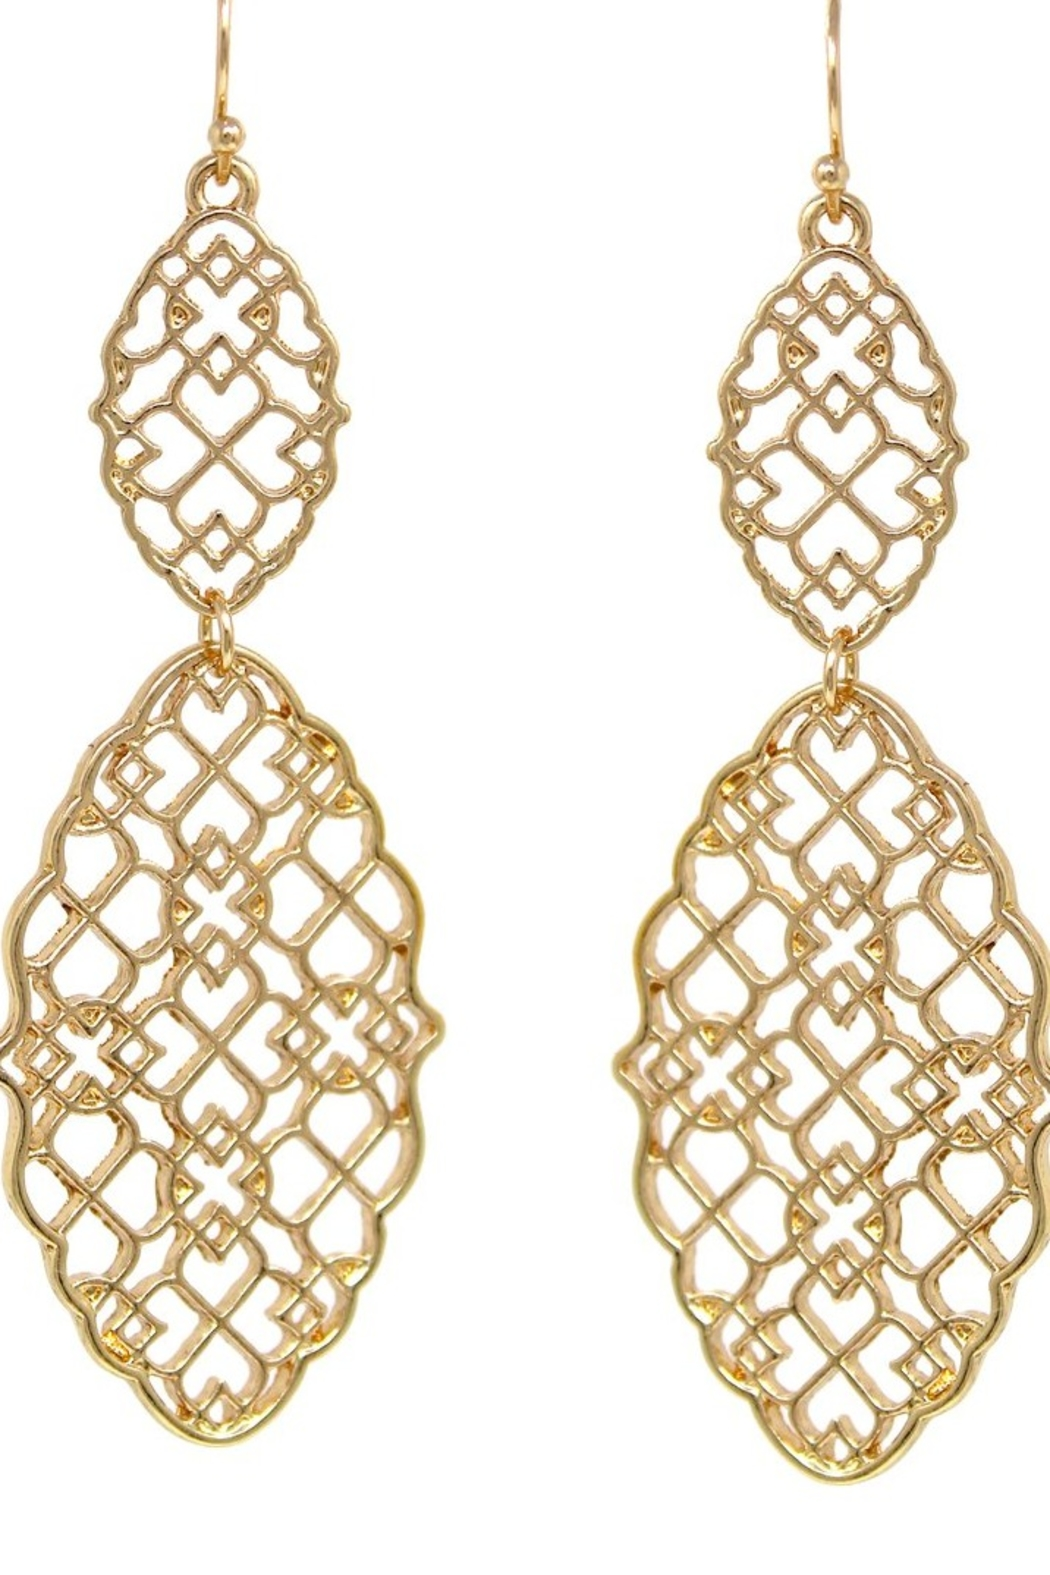 US Jewelry House Moroccan Cutout Double Drop Earrings - Main Image